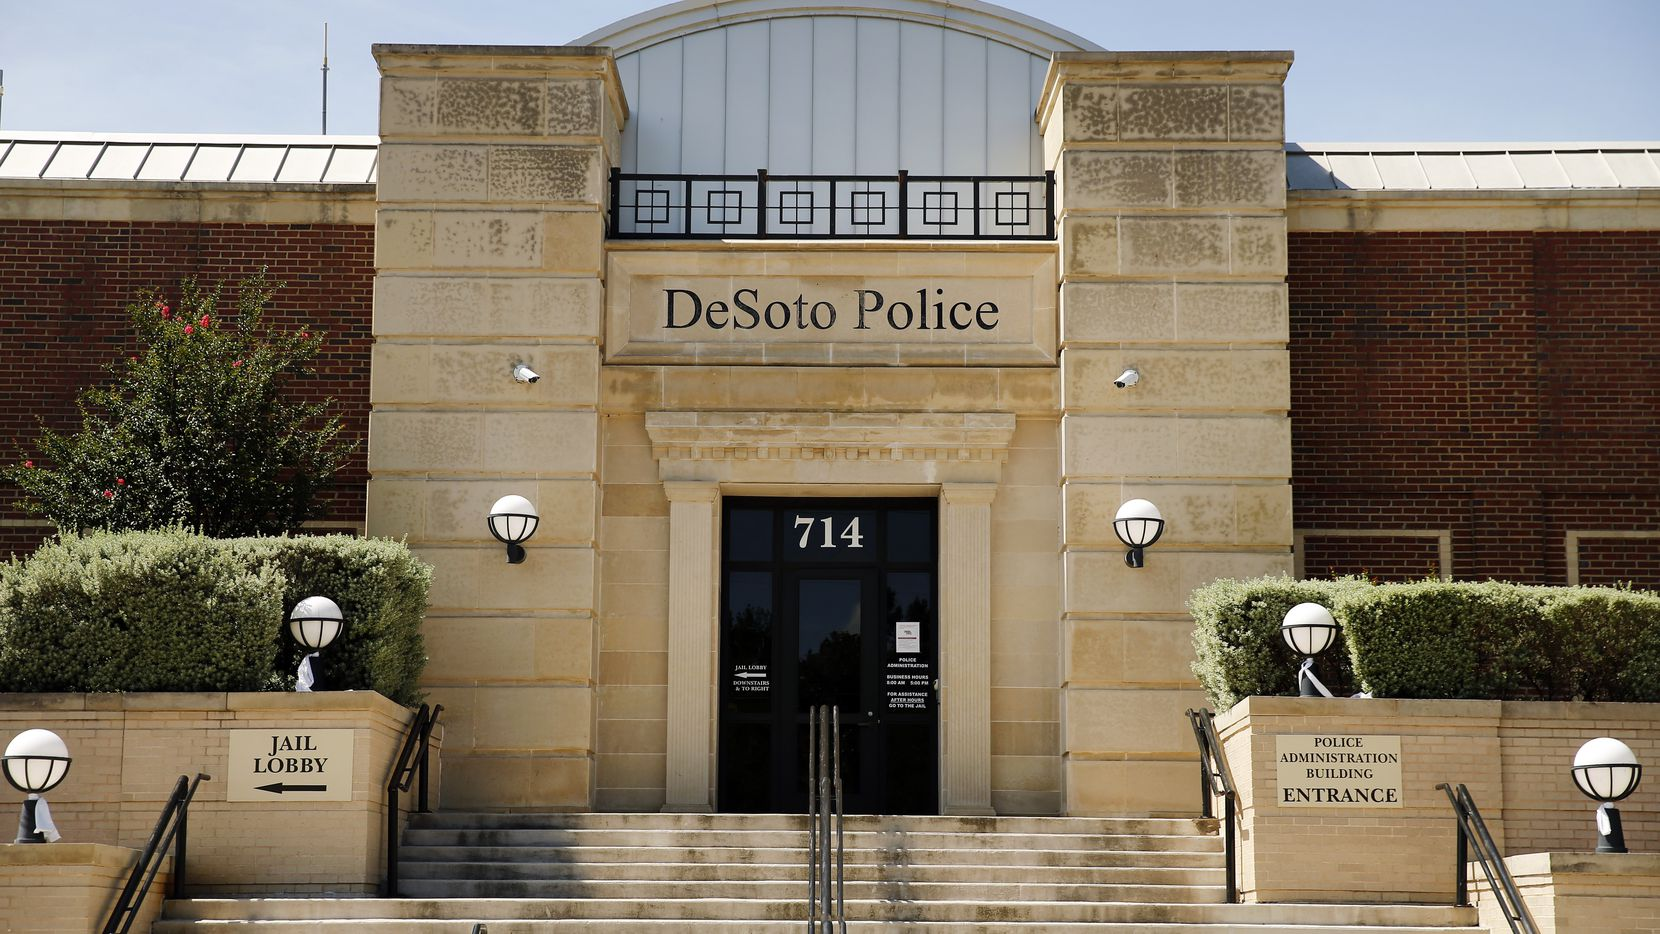 An exterior view of the DeSoto Police Department on Belt Line Rd. in DeSoto, Texas, Wednesday, June 24, 2020.